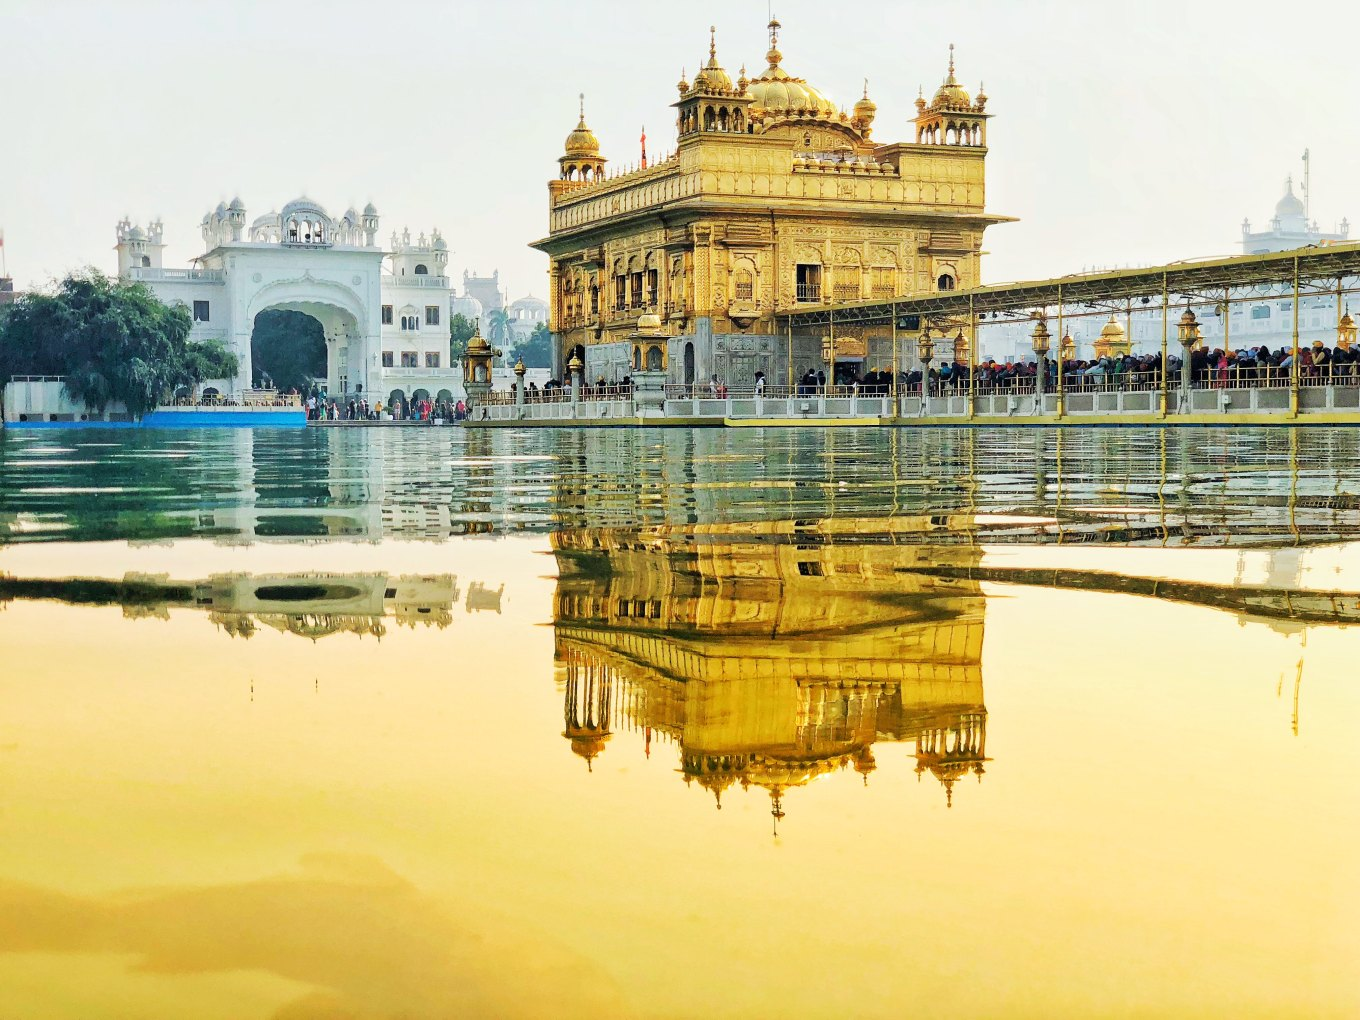 Image of Golden Temple in Amritsar, India